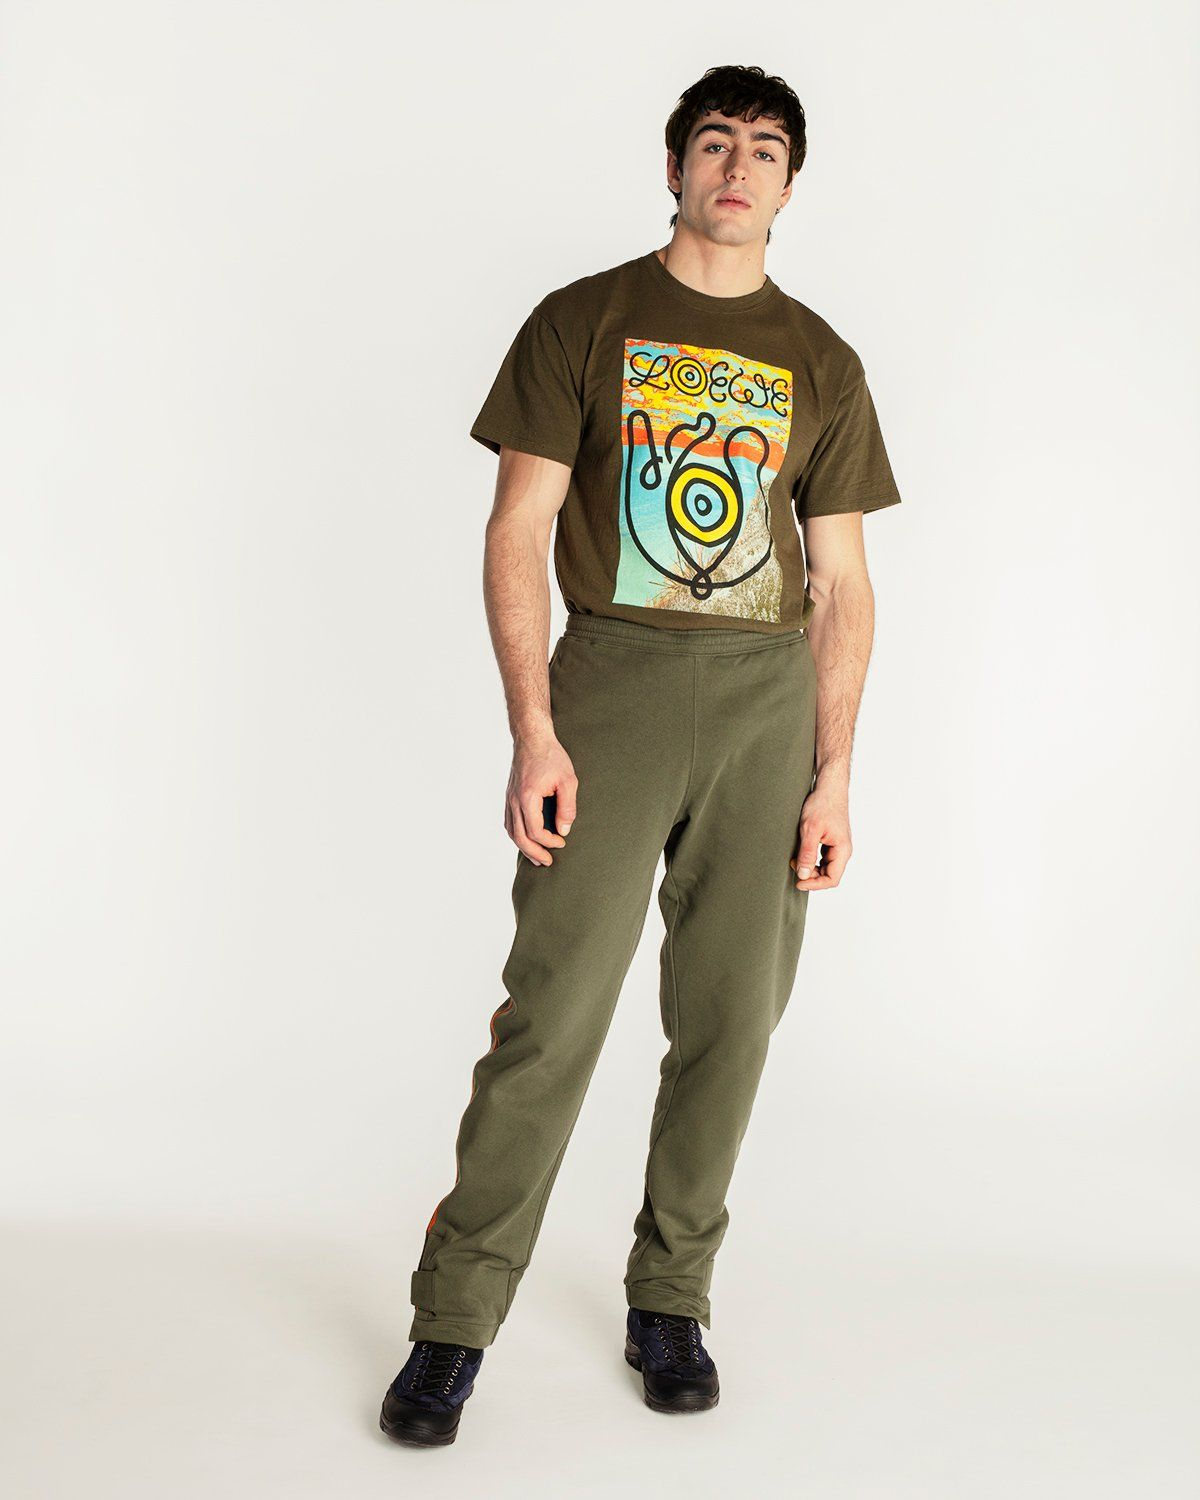 EYE/LOEWE/NATURE FLEECE TROUSERS - Image 2